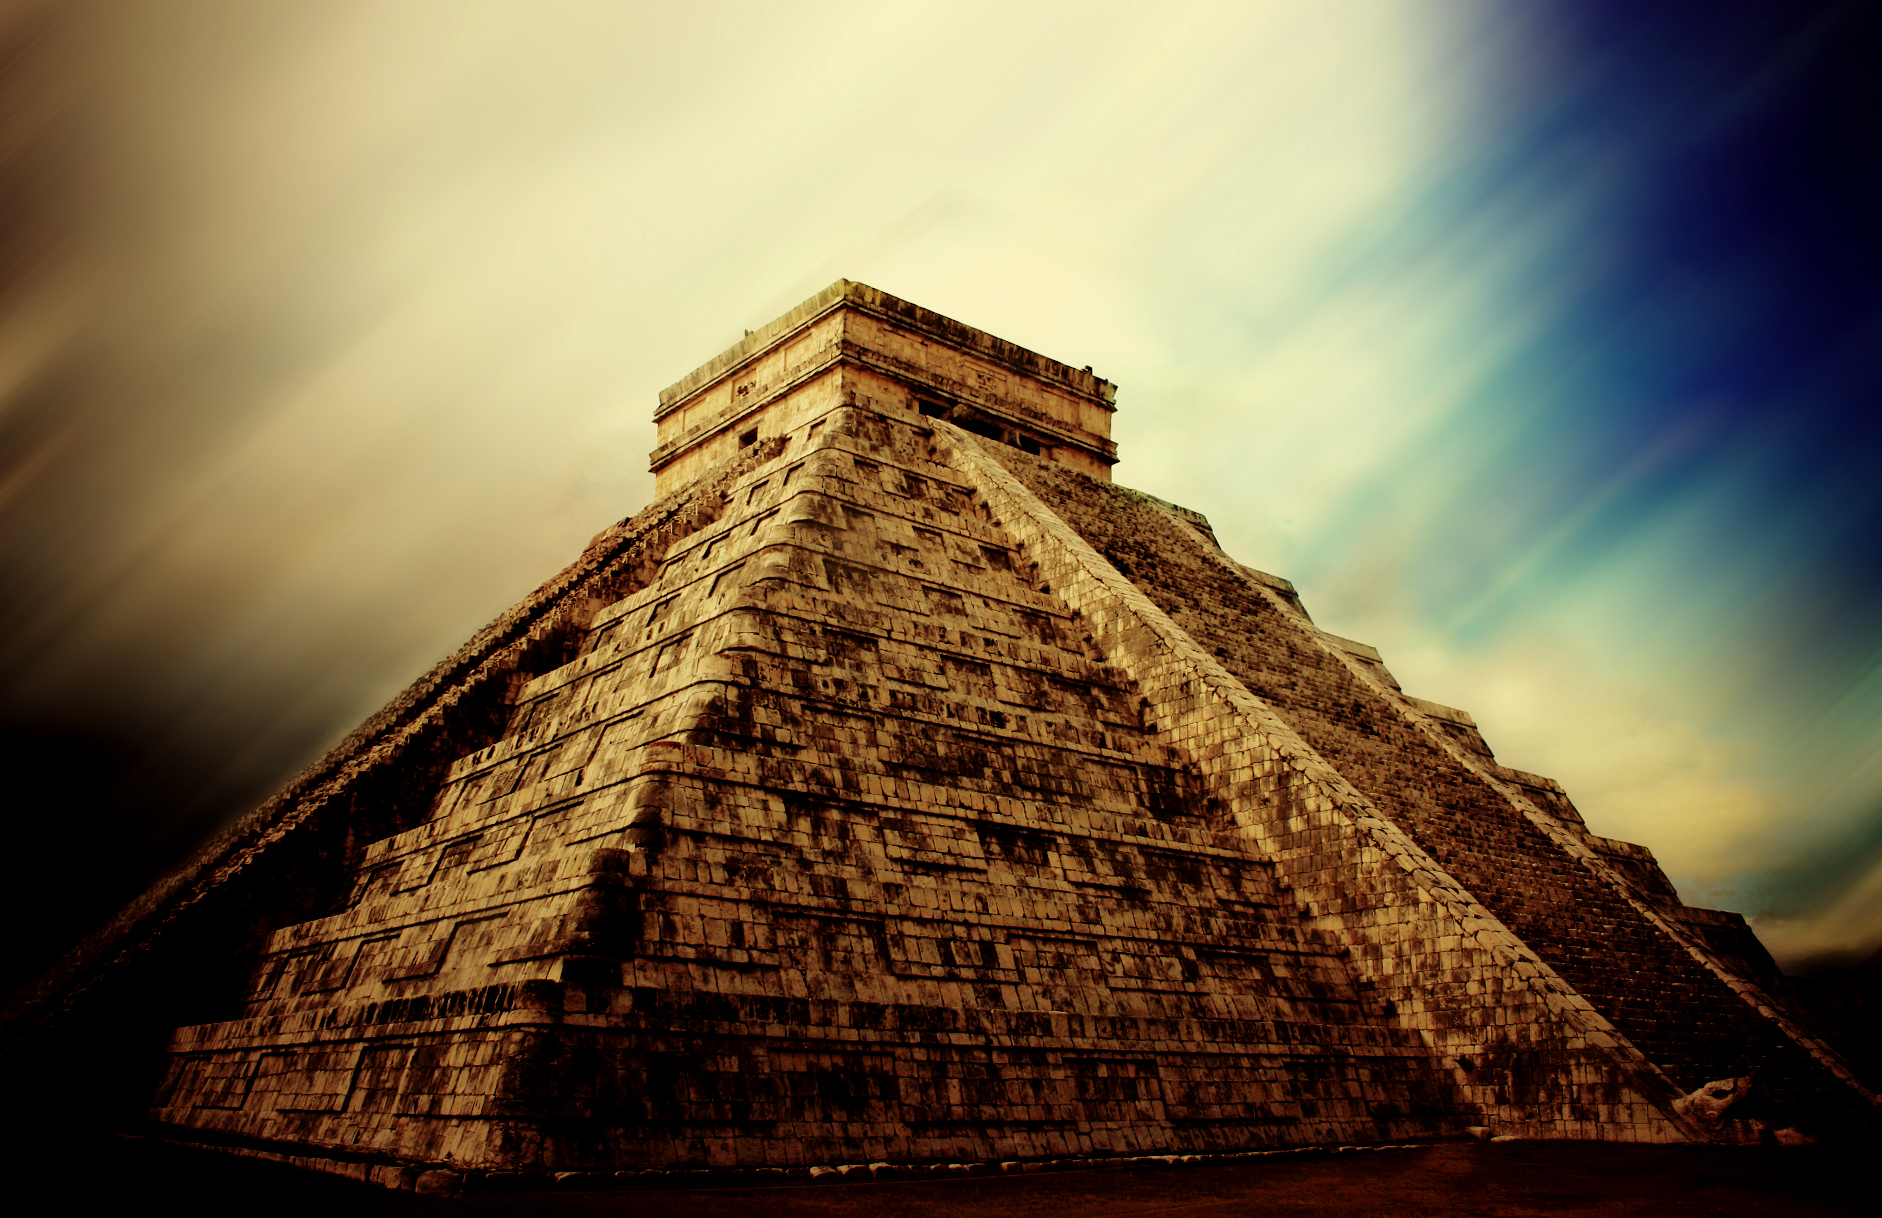 chichen itza in mexico wallpapers high quality | download free